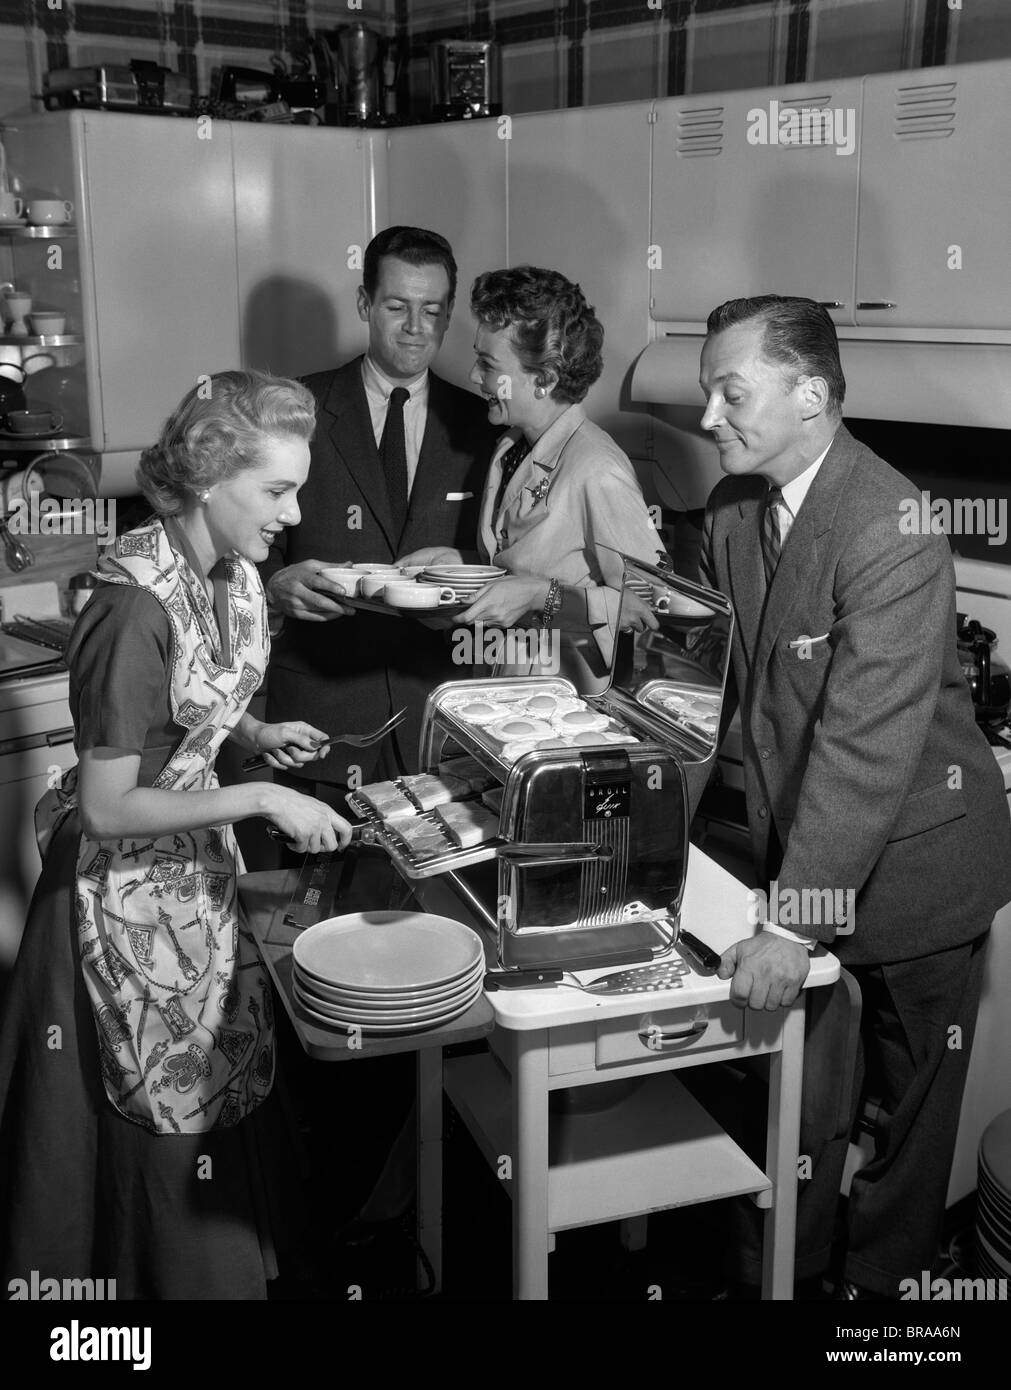 1950s 2 COUPLES IN KITCHEN WOMAN COOKING HAM & EGGS IN CHROME BROILER - Stock Image